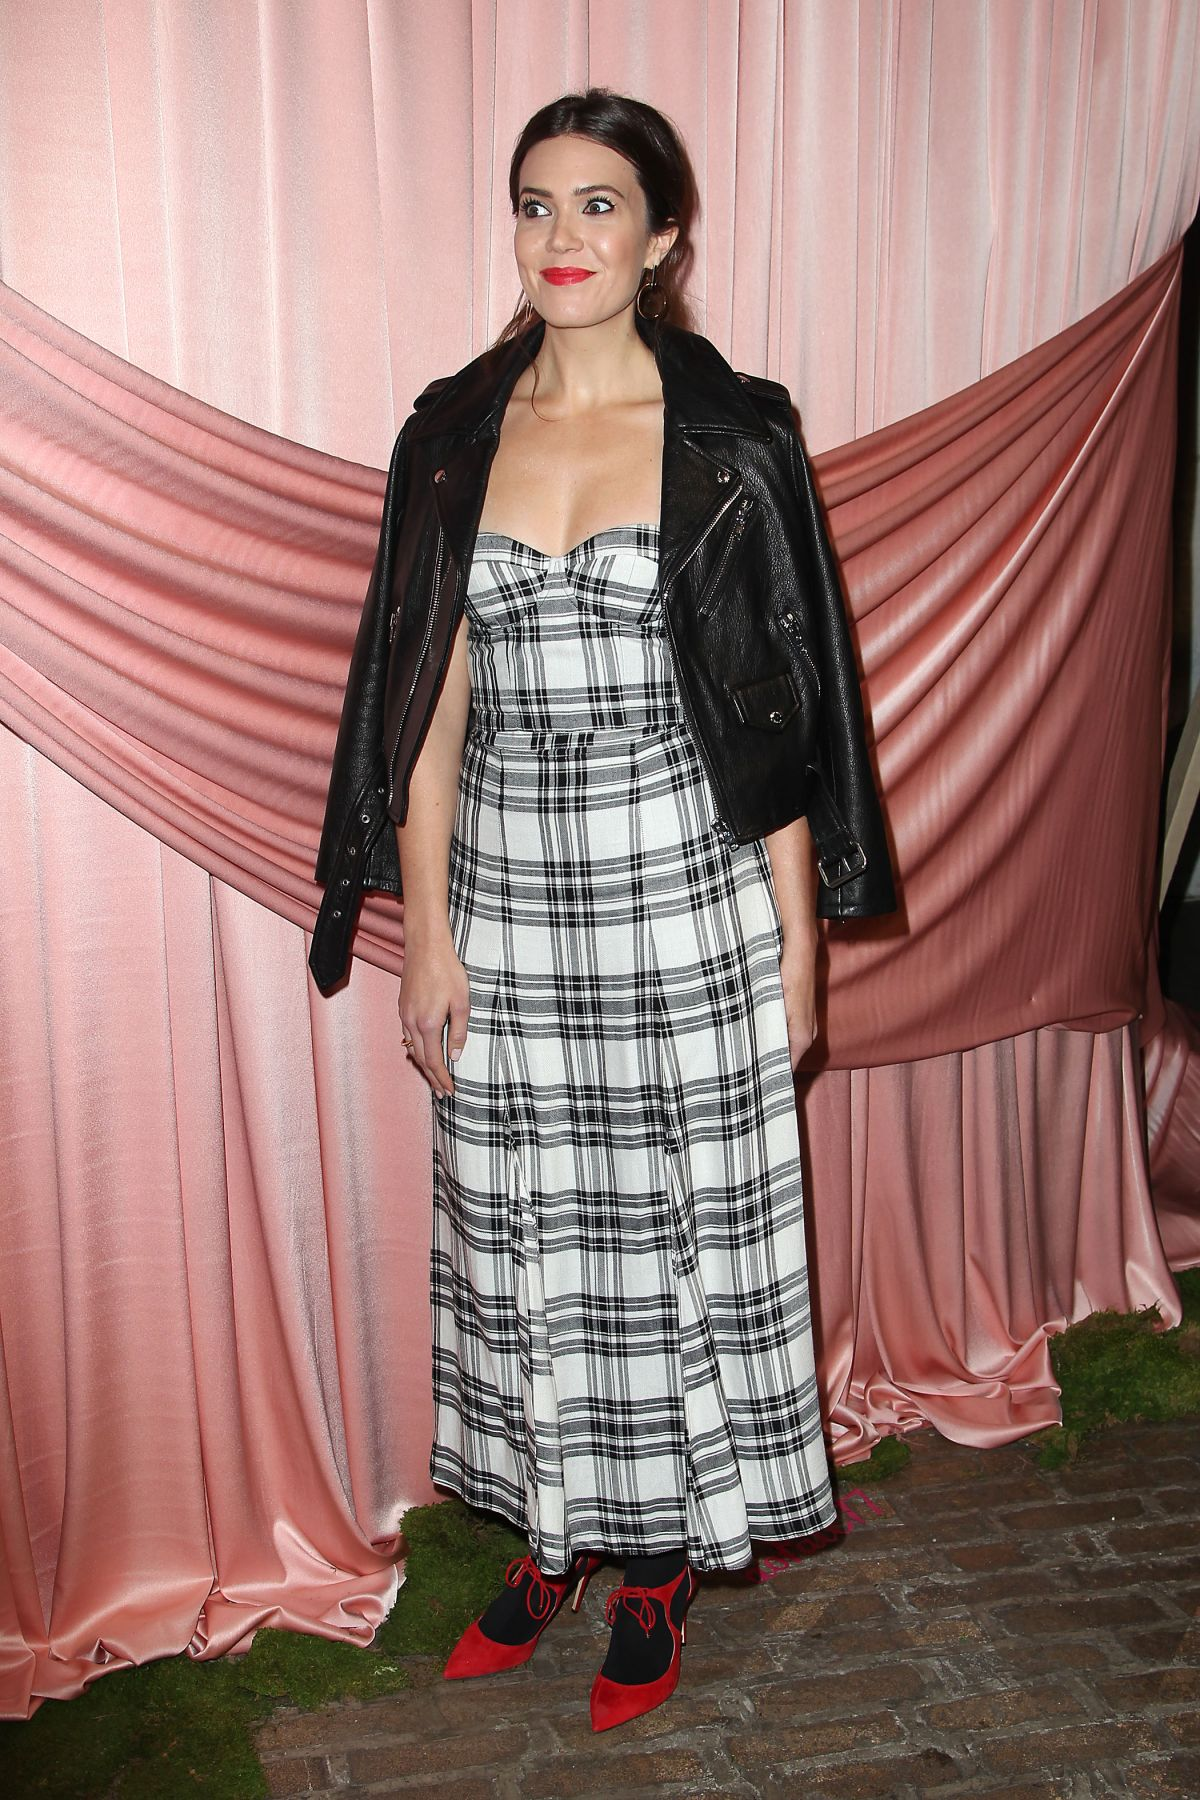 MANDY MOORE at Aice+Olivia by Stacey Bendet Presentation in New York 02/14/2017   mandy-moore-at-aice-olivia-by-stacey-bendet-presentation-in-new-york-02-14-2017_3